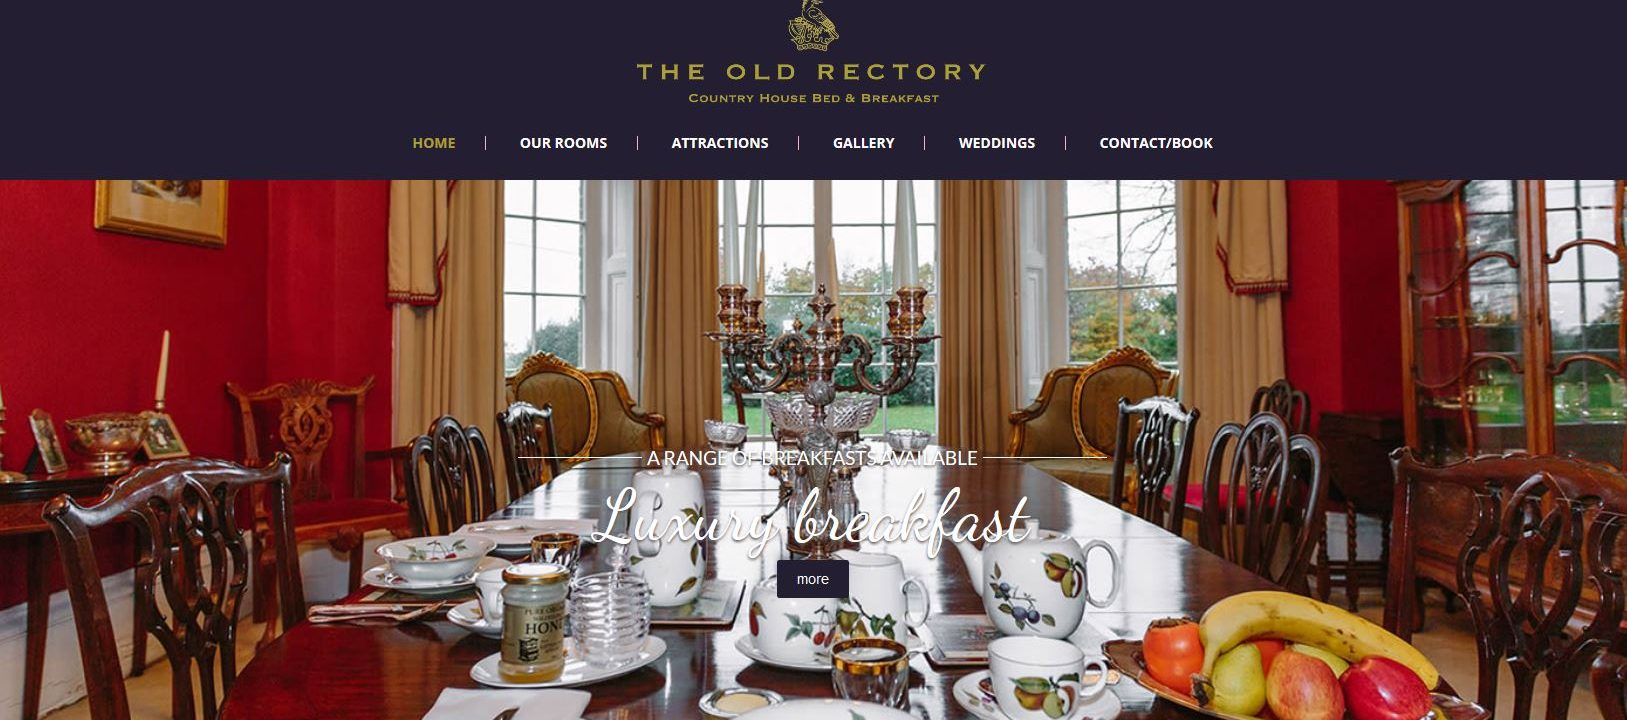 the old rectory in great mongeham in deal kent website design